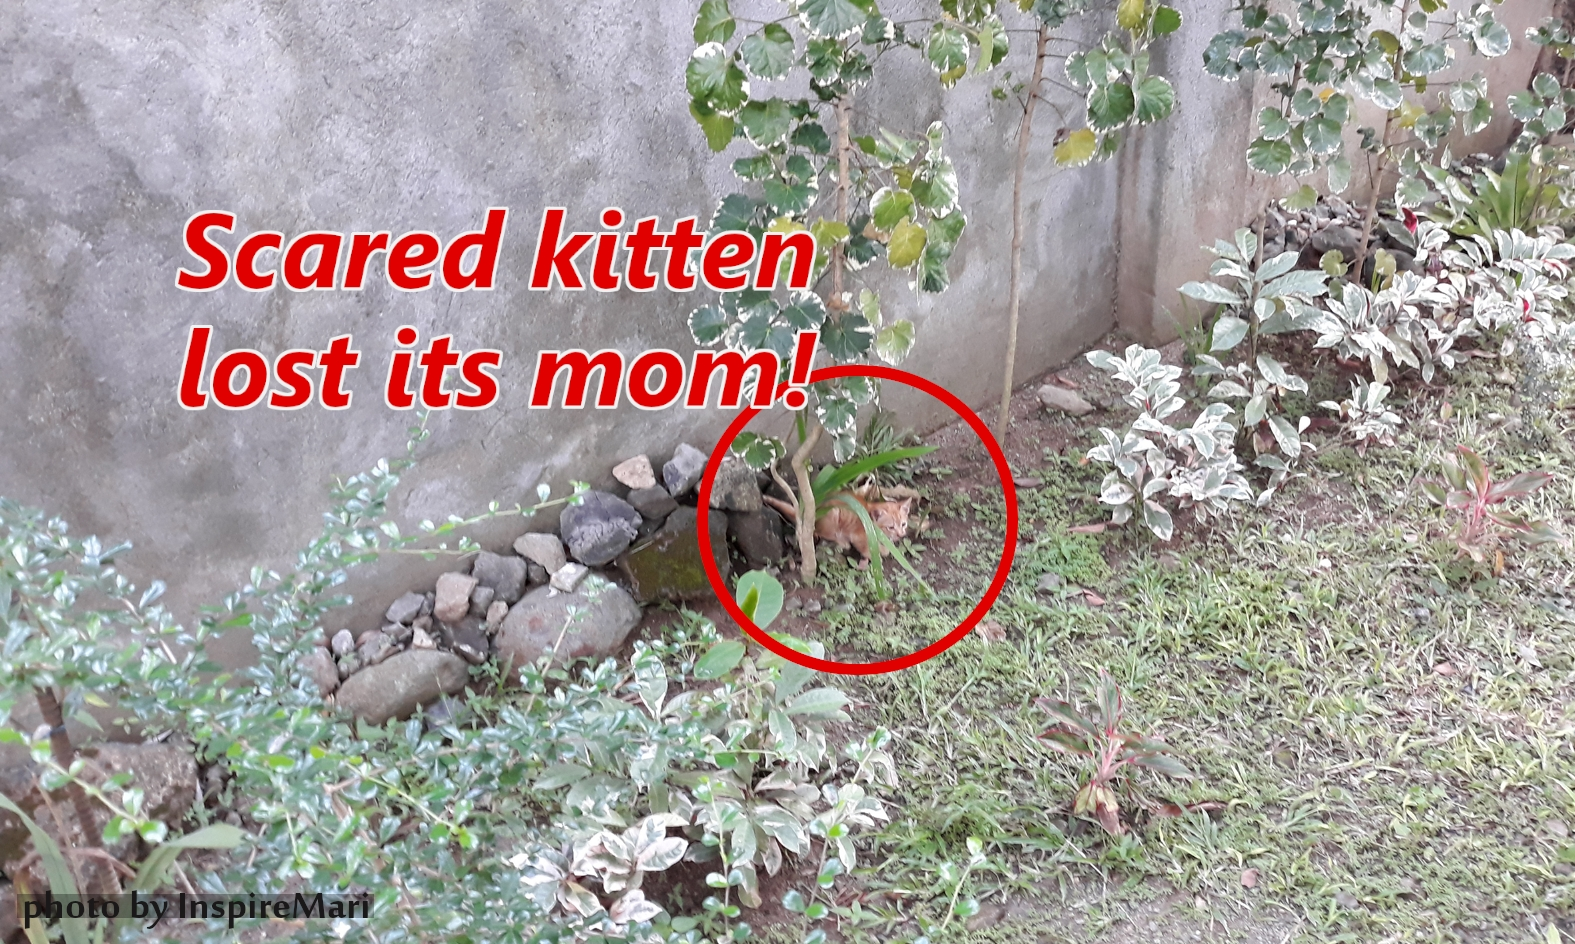 Scared kitten found in garden in the Philippines (2019) photo taken by inspiremari.nl